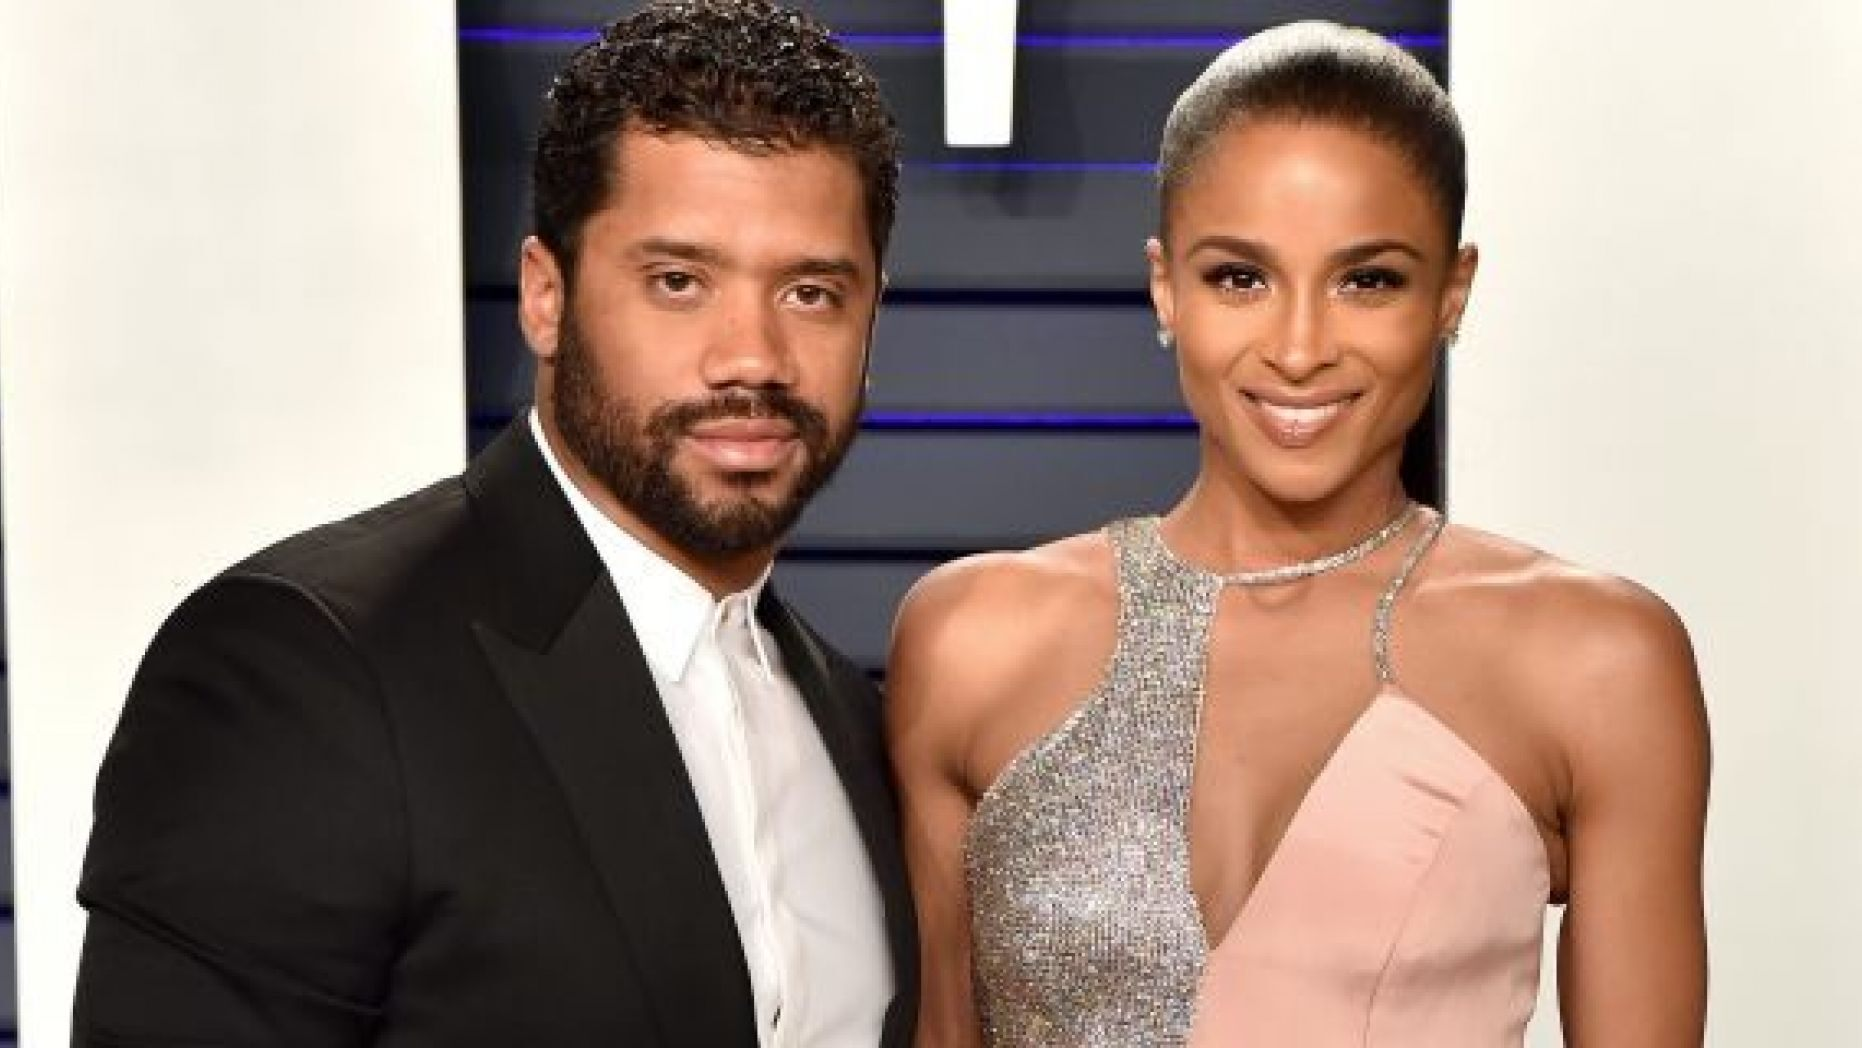 Ciara Will Host The Fifth Annual Sports Humanitarian Awards Presented By ESPN